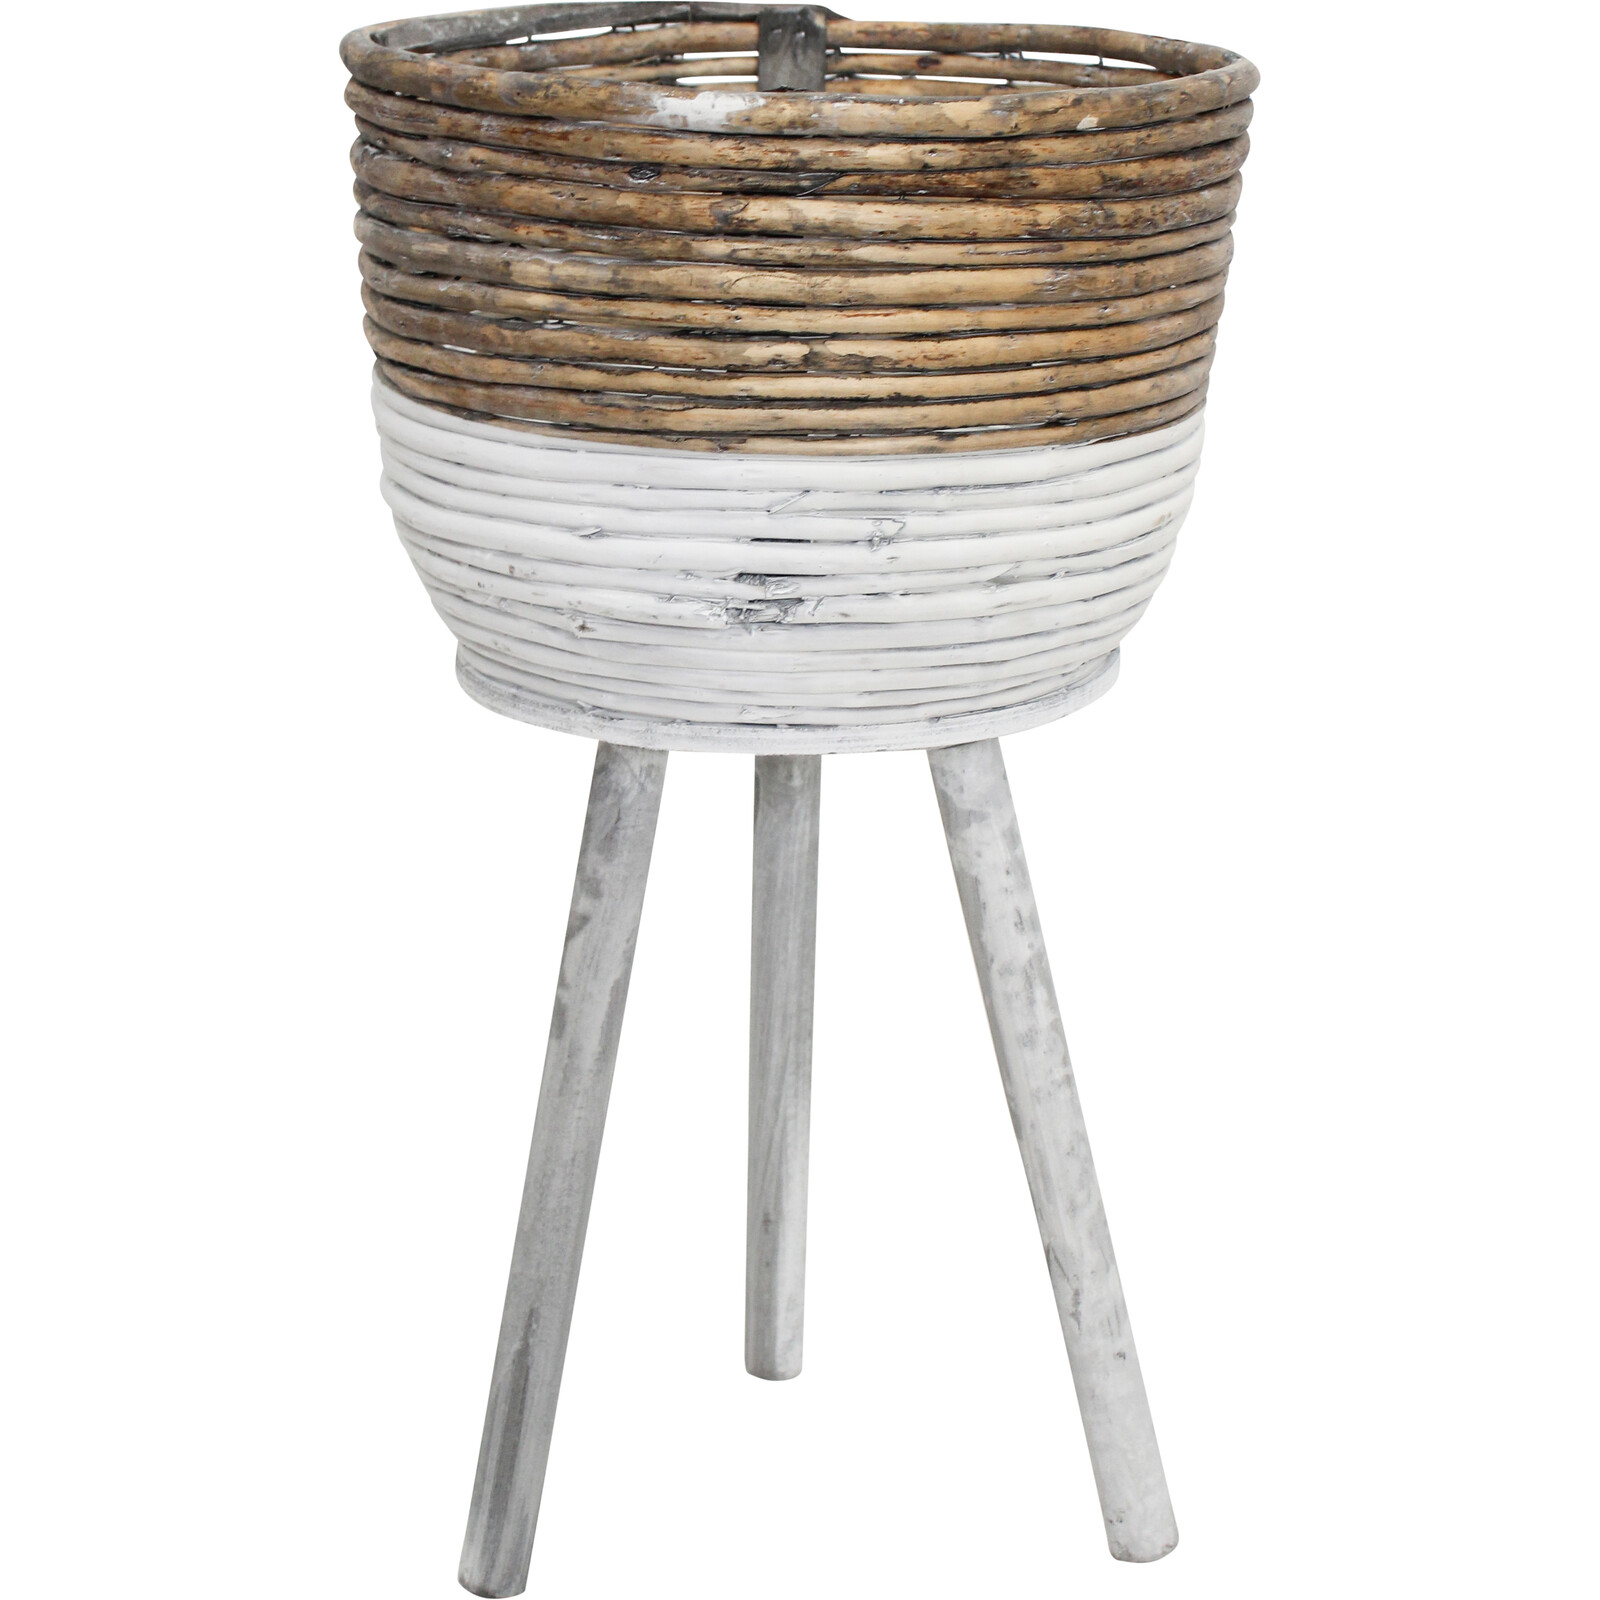 Planter Tall Willow